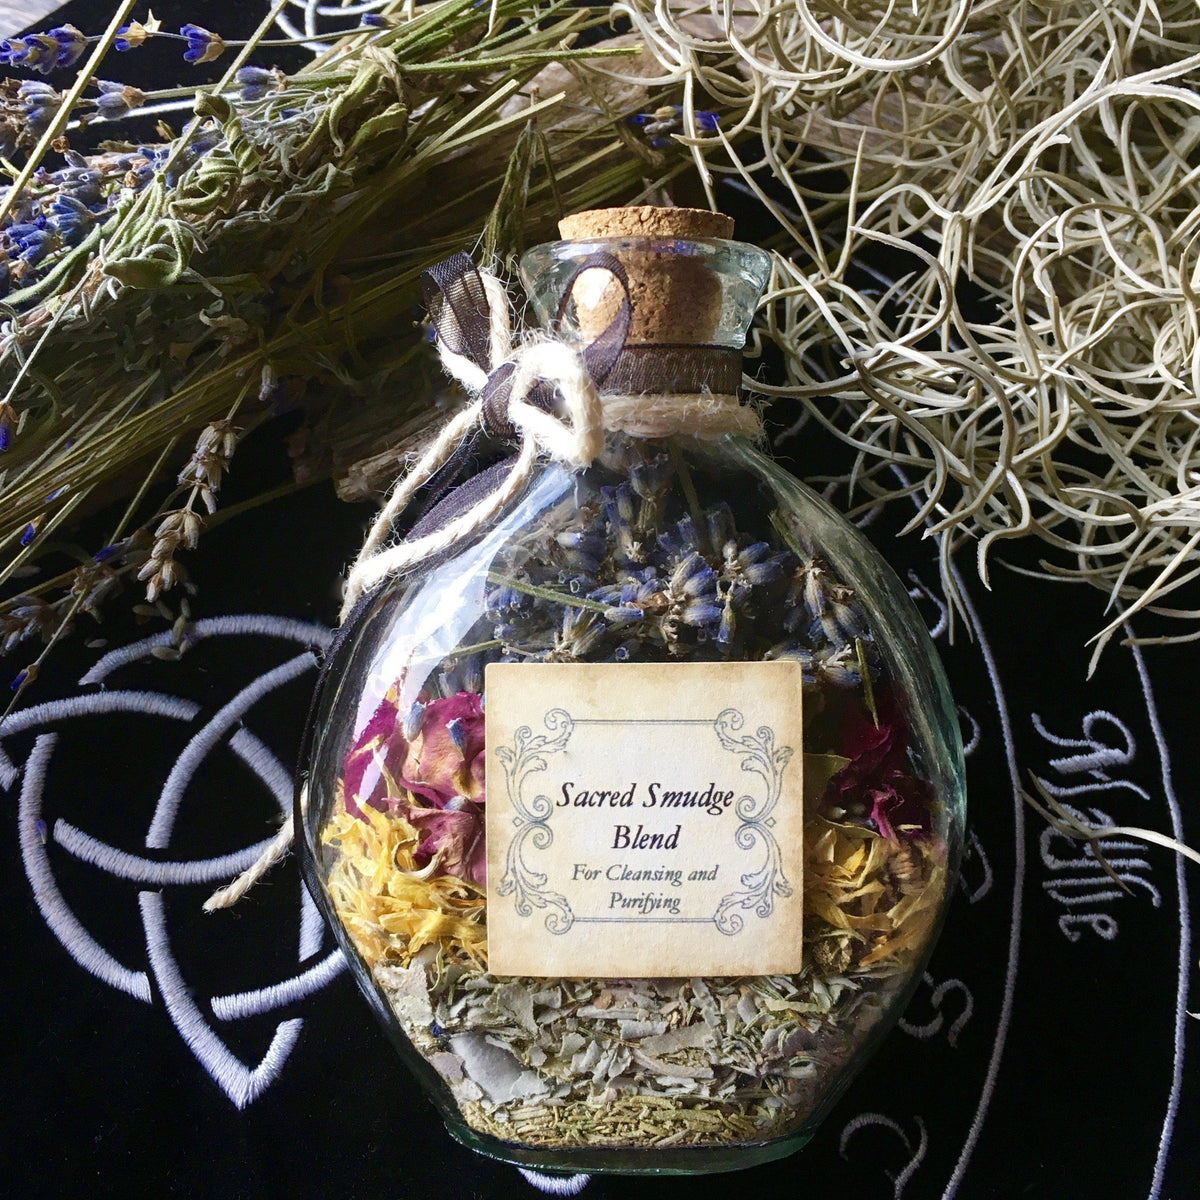 Herb and Flower Incense Blend- Sacred Smudge, Smudging/Incense - SugarMuses